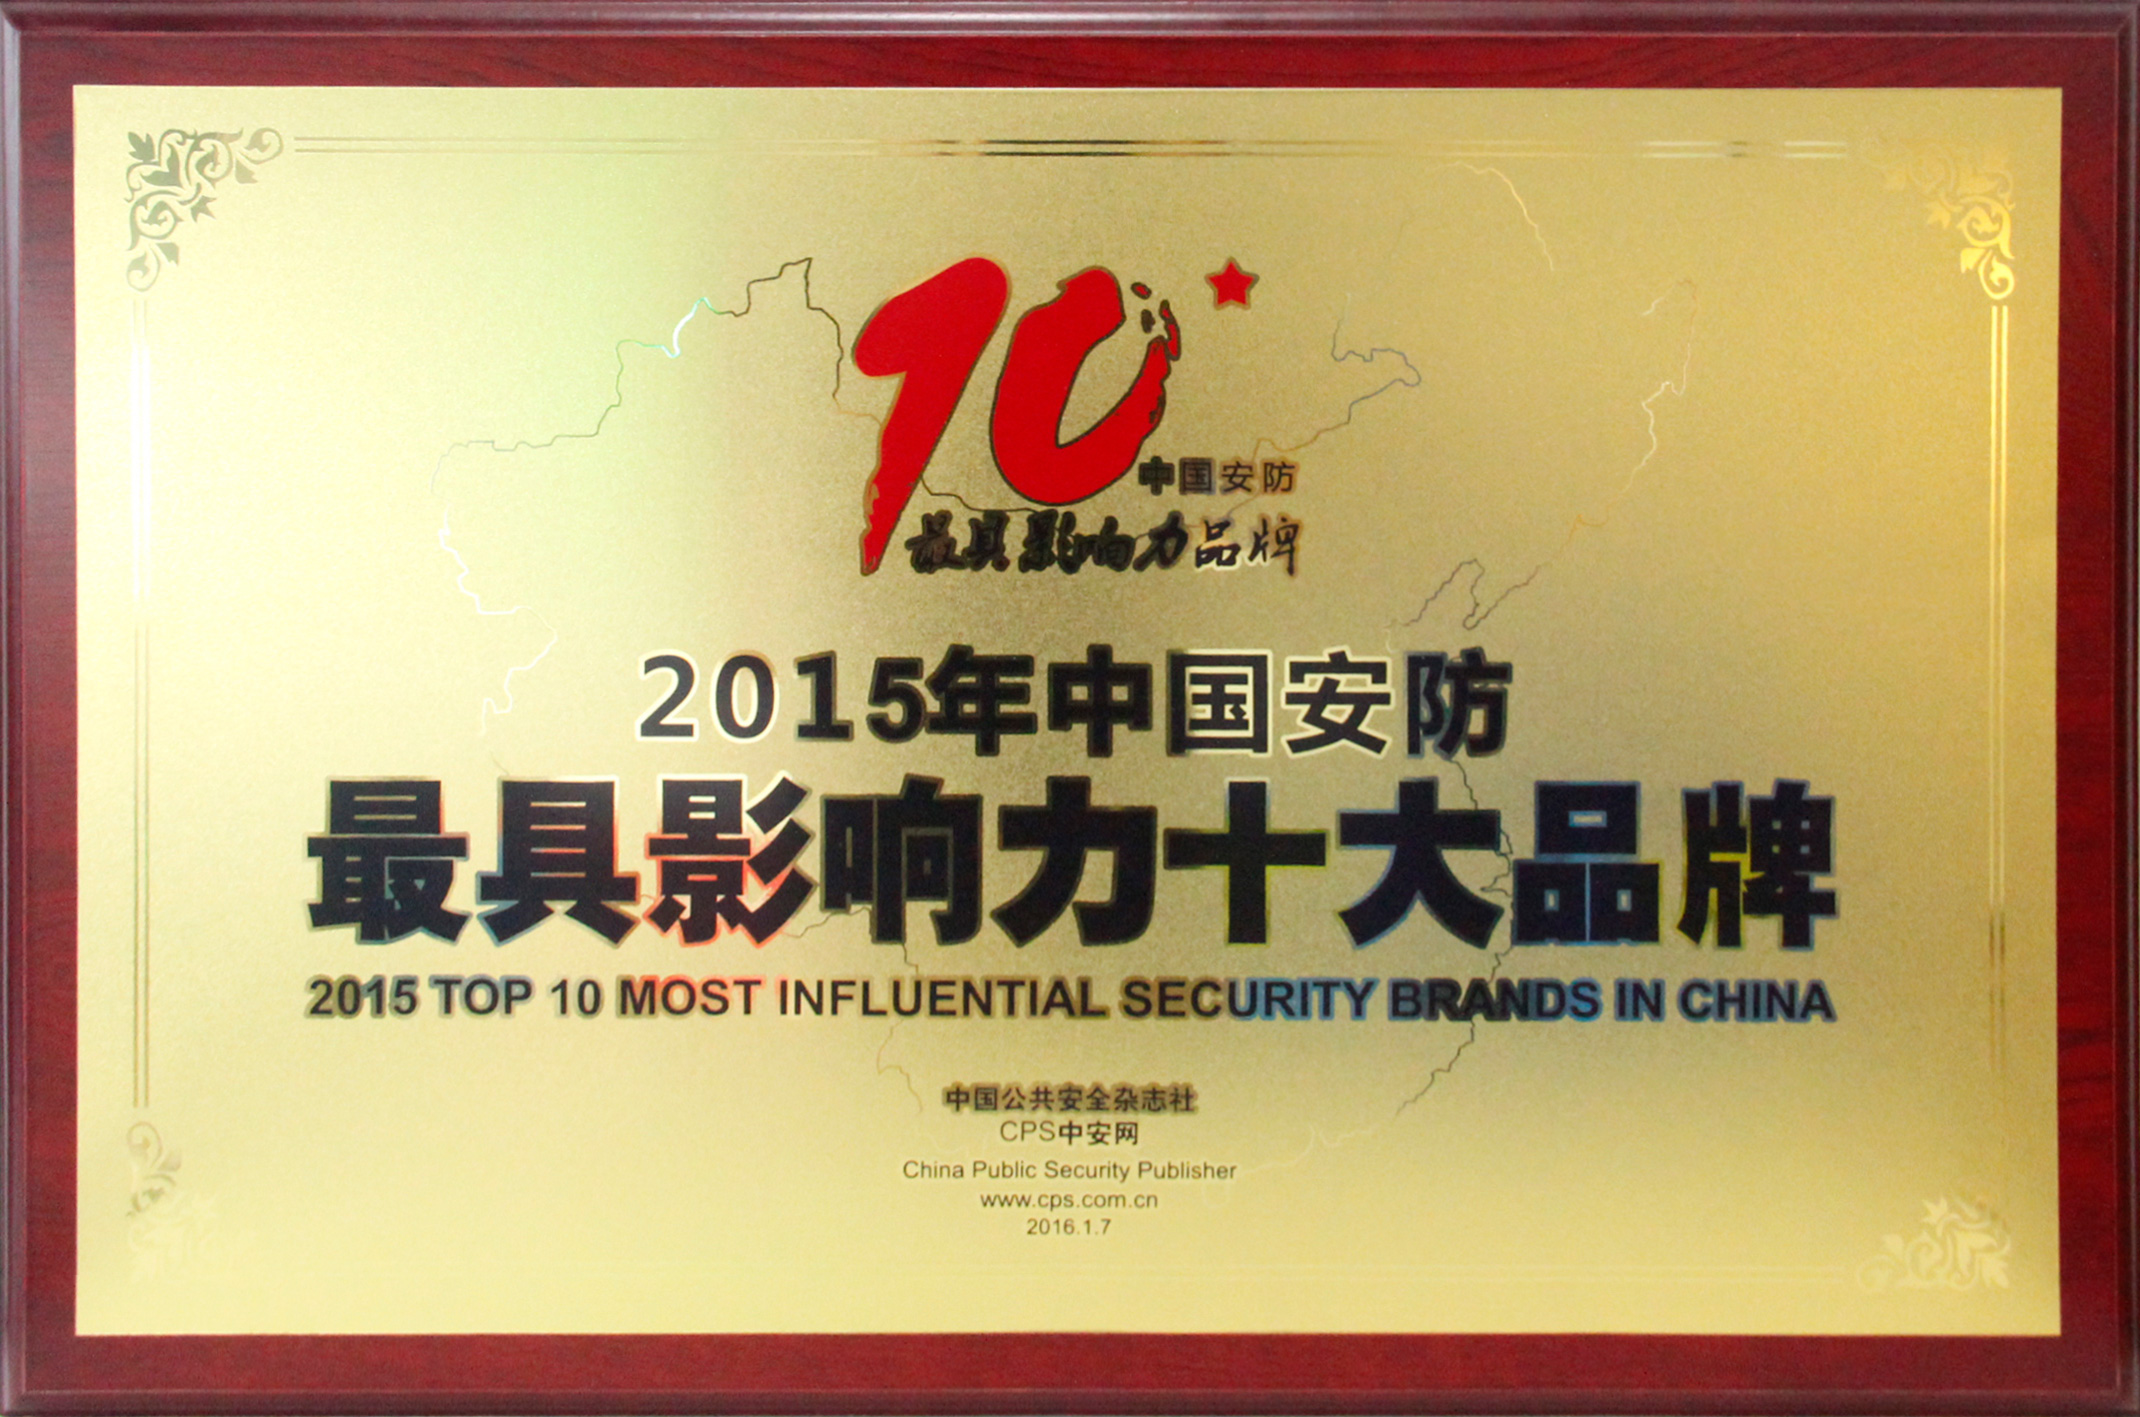 2015 TOP 10 MOST INFLUENTIAL SECURITY BRANDS IN CHINA